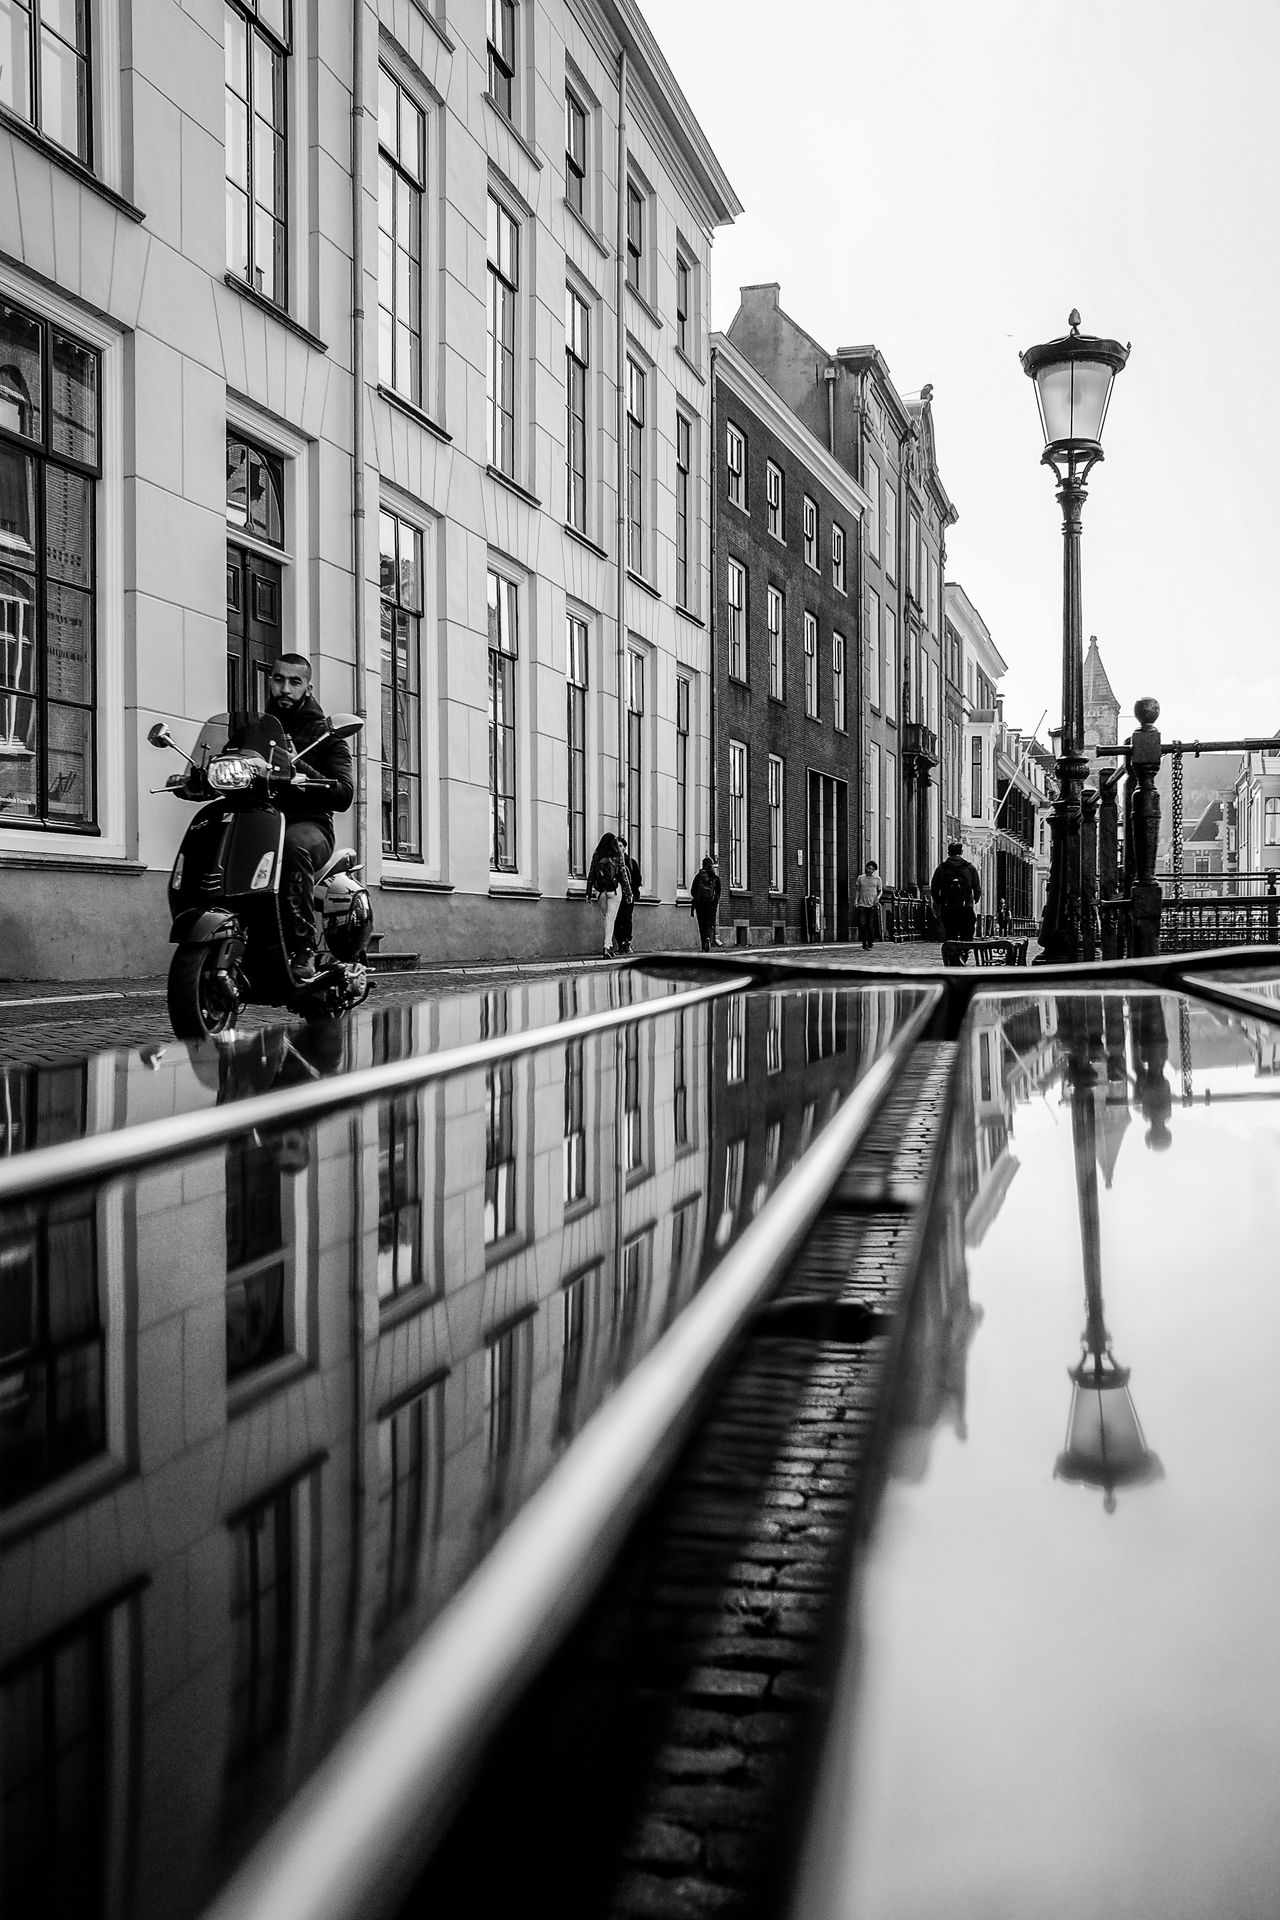 Architecture B&w Blackandwhite Building Exterior Built Structure City Day Holland Land Vehicle Men Monochrome Moped Netherlands Outdoors Real People Reflection Scooter Sky Street Light Transportation Utrecht